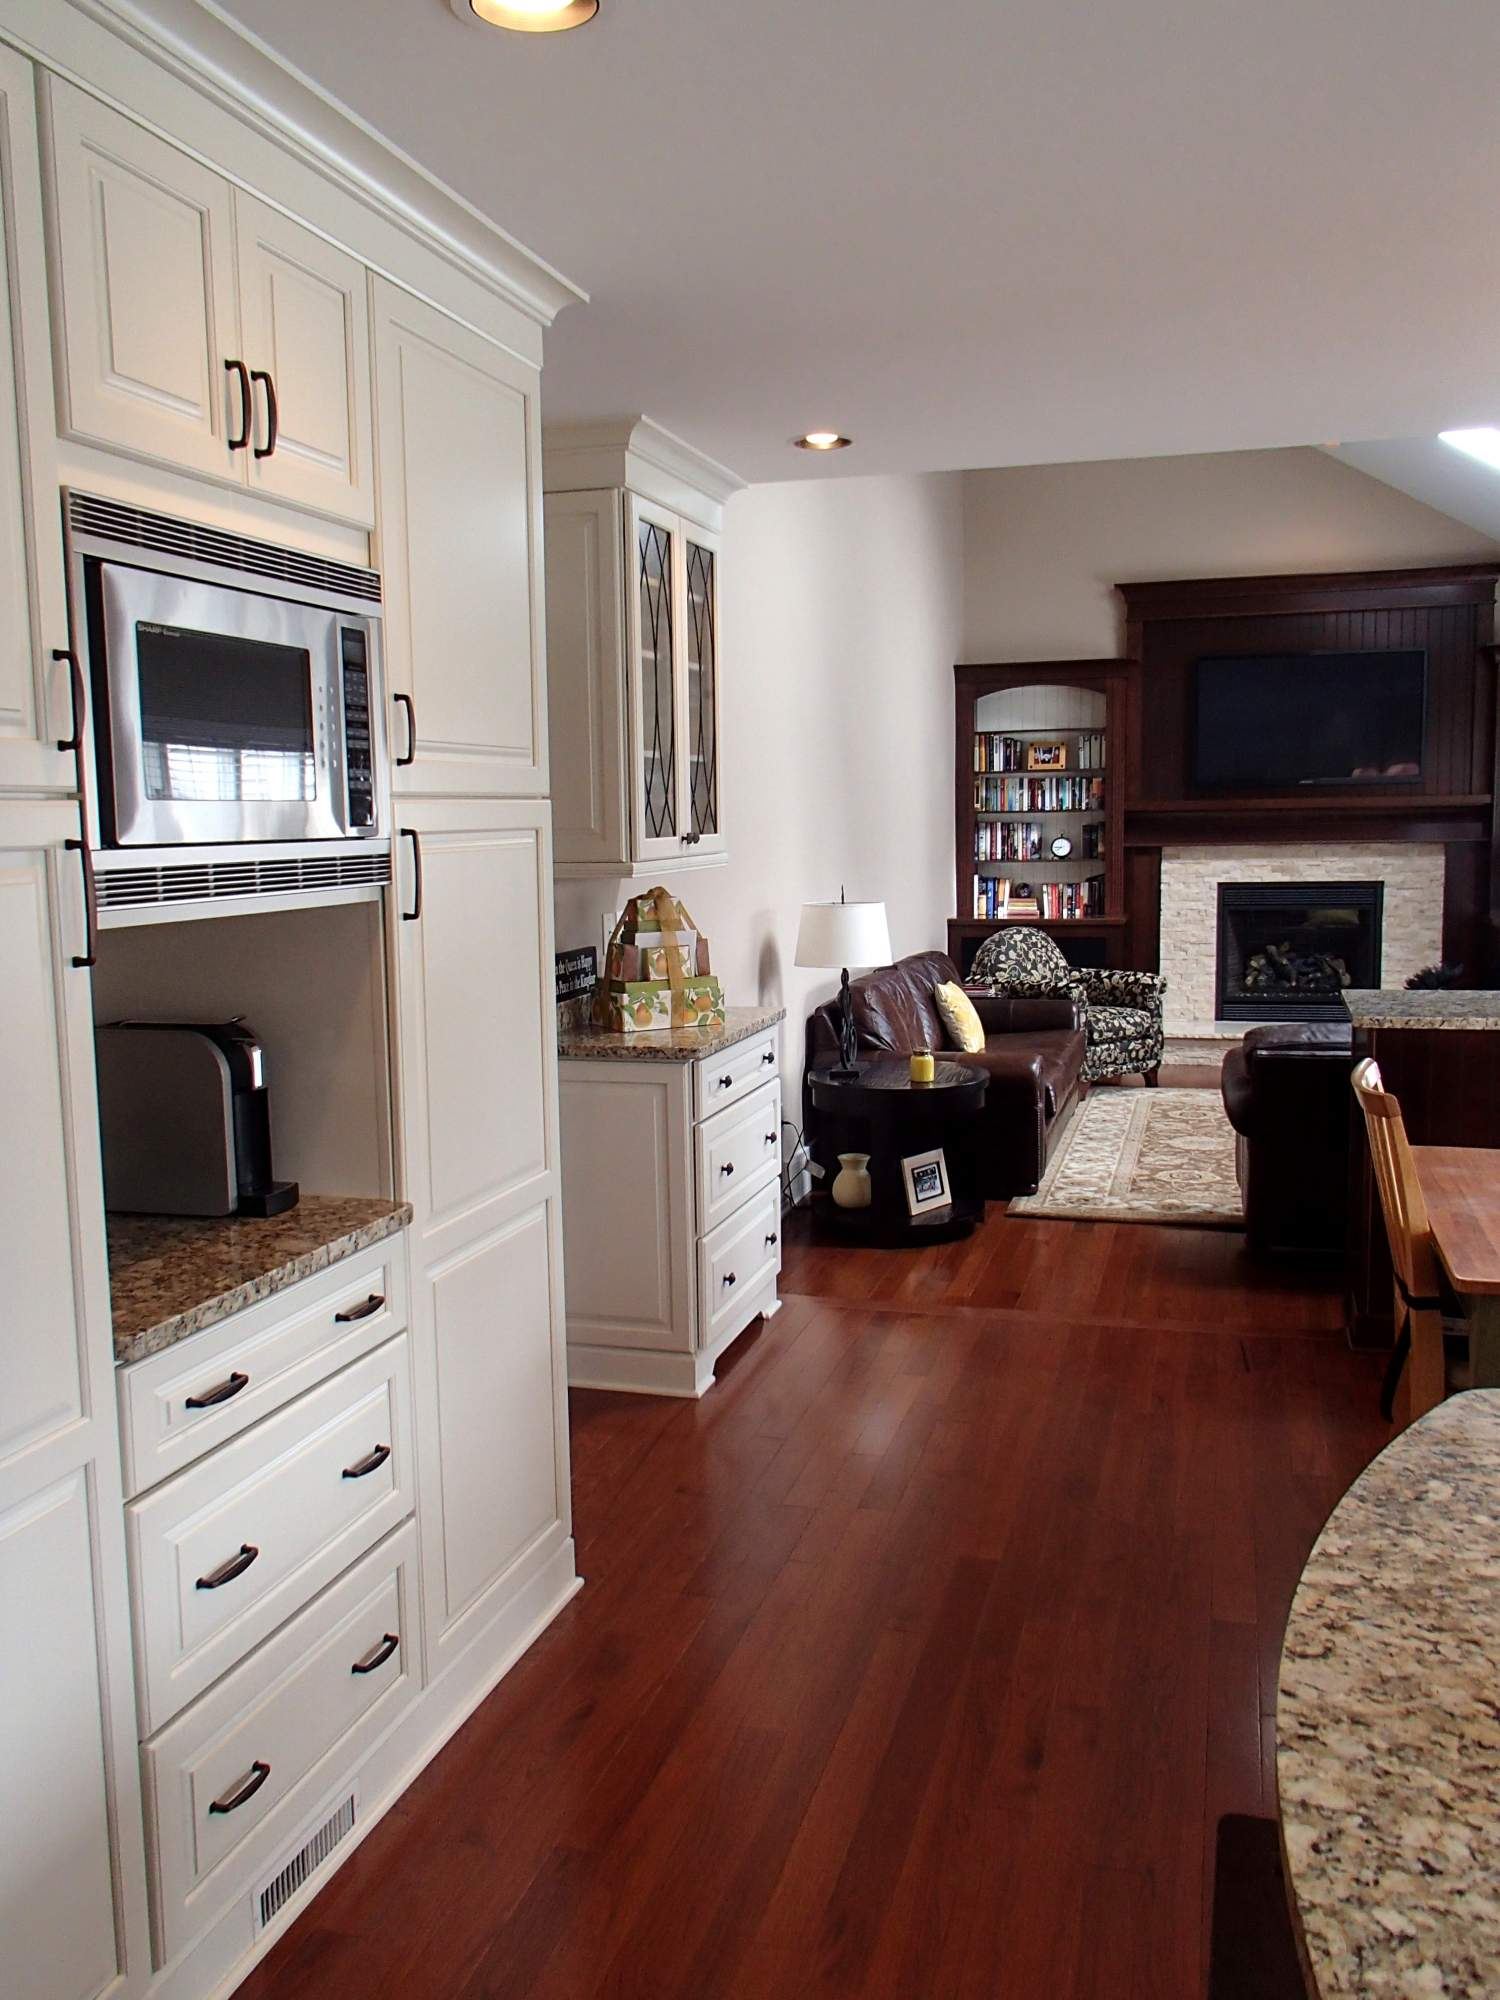 Kitchen Family Room Designs: Traditional Kitchen & Family Room > Kitchens > Projects